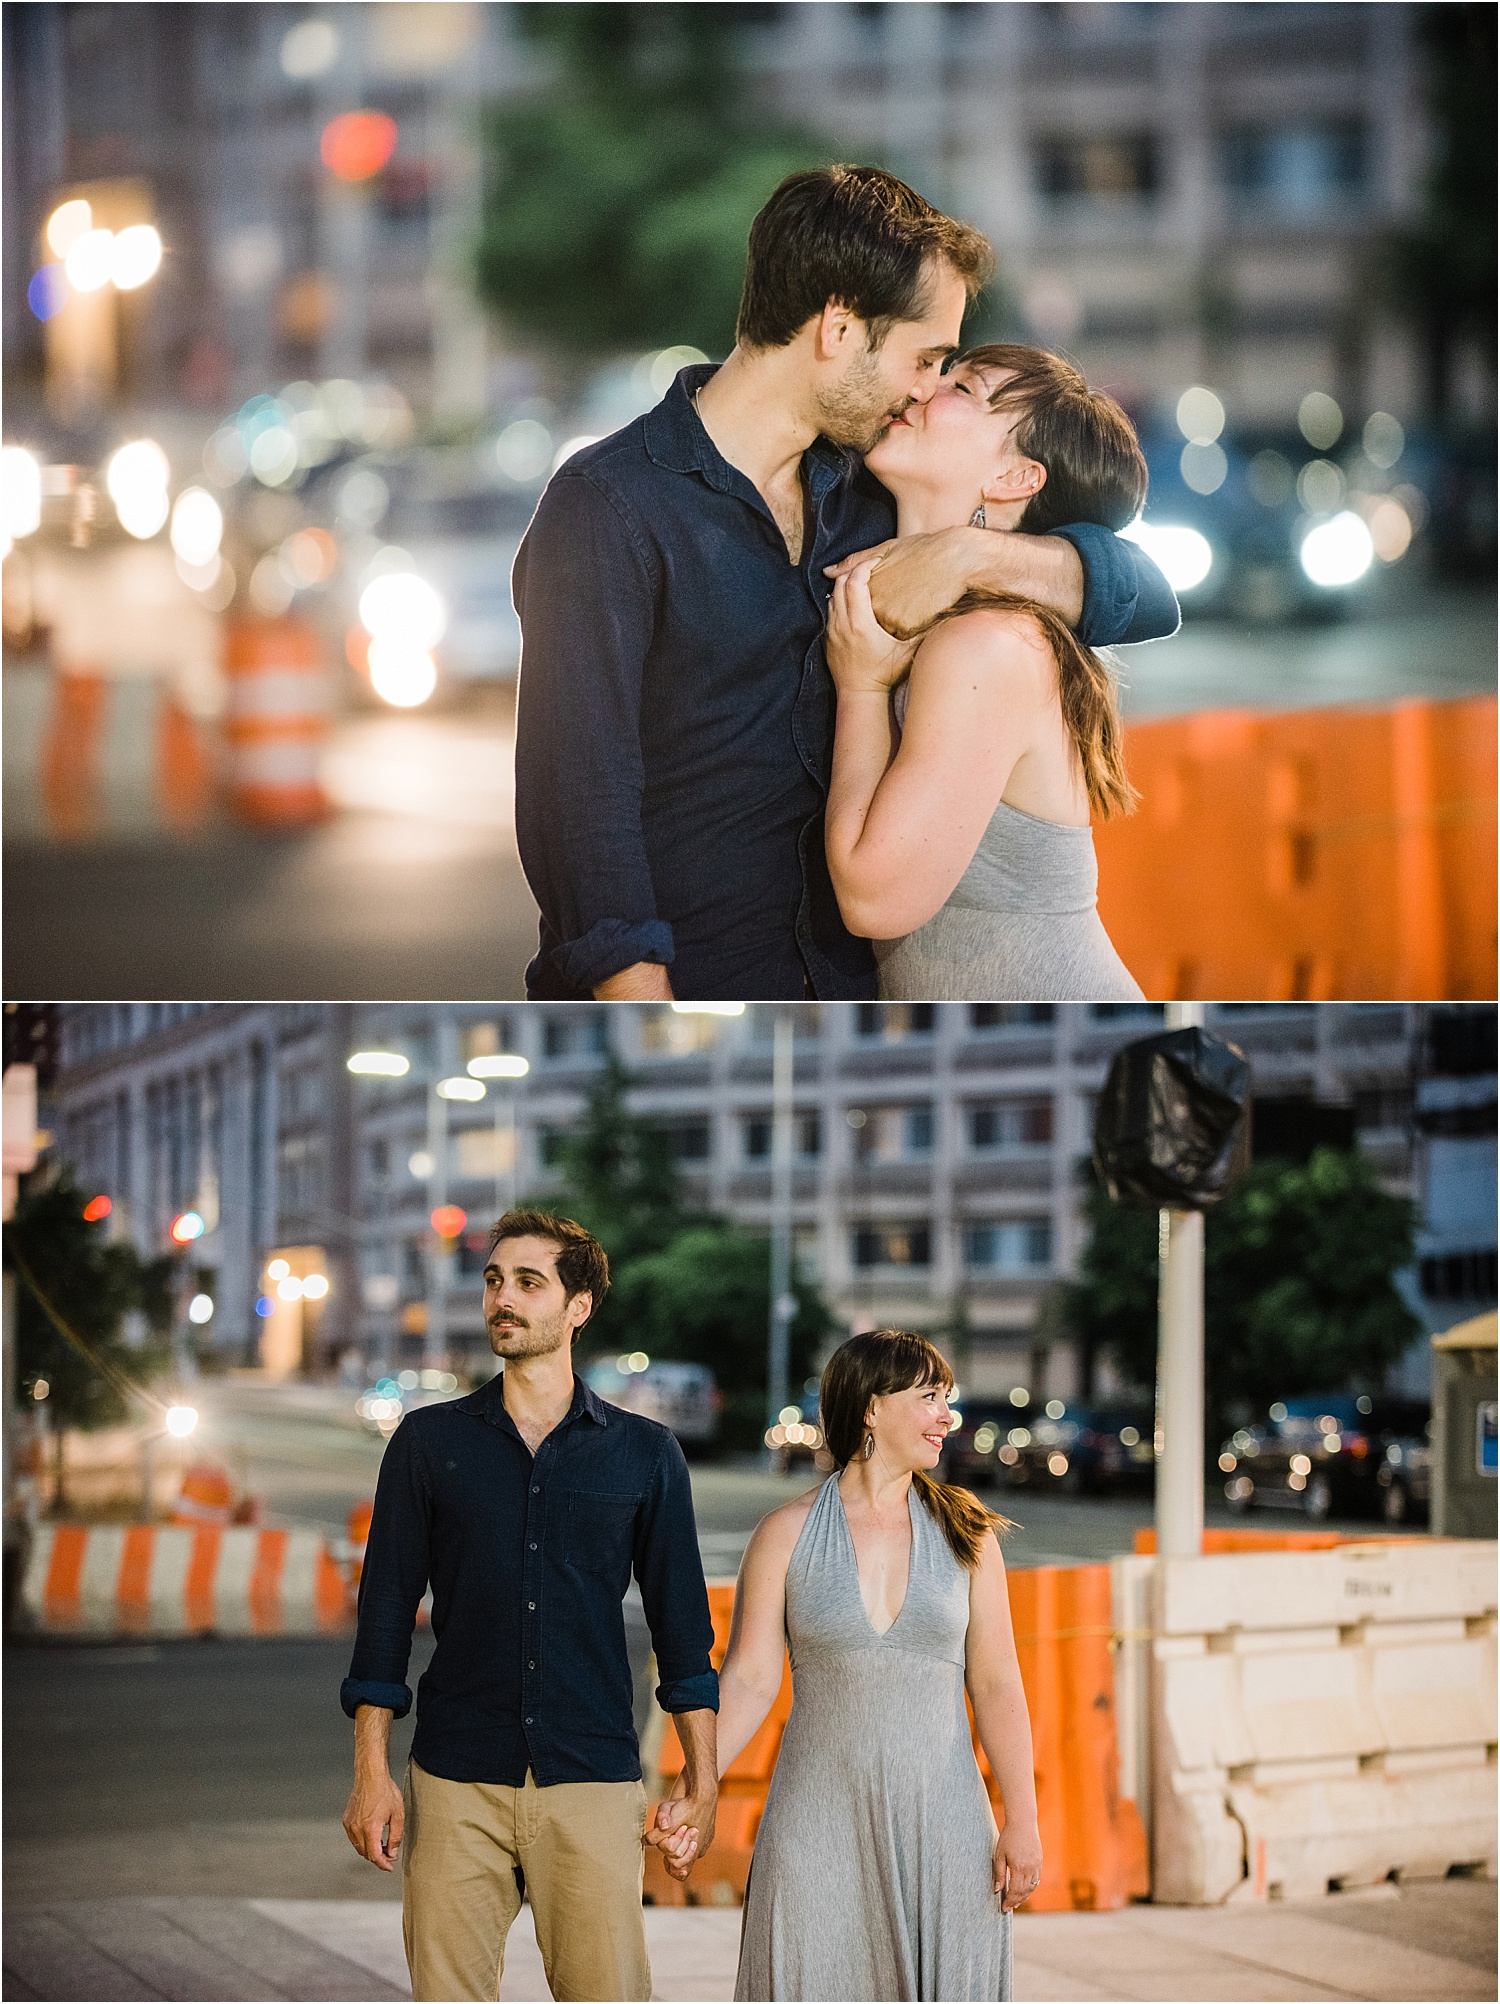 NYC_Engagement_Session_Harlem_Engaged_Photography_037.jpg